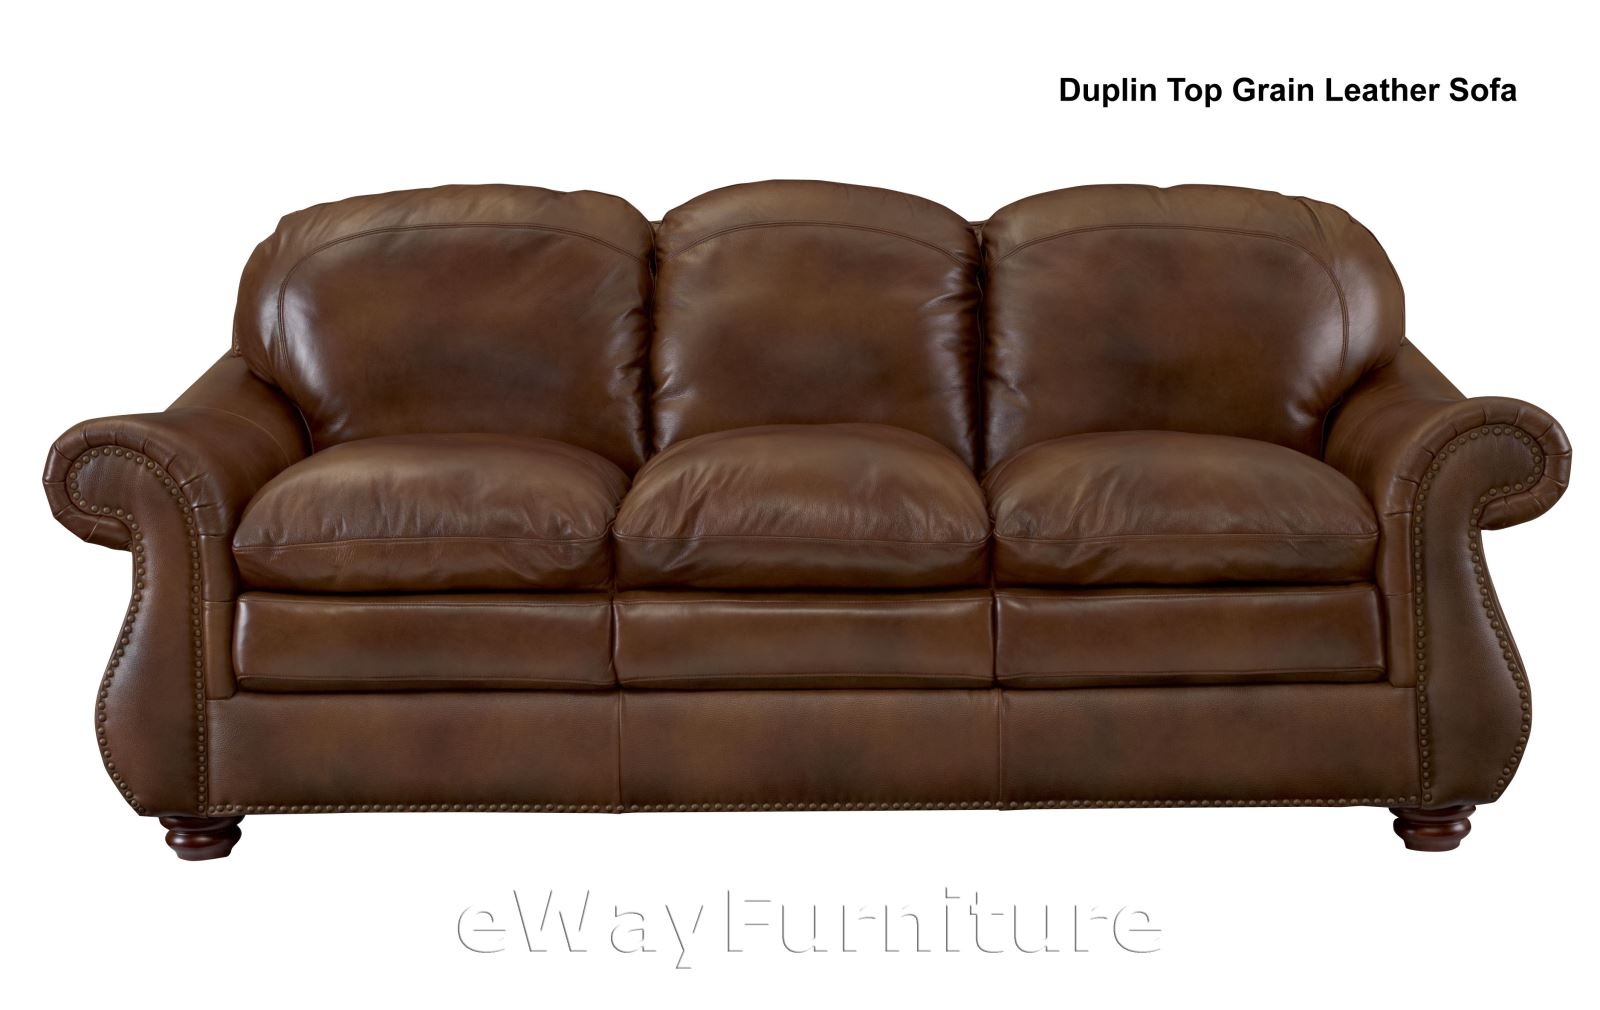 Duplin brown top grain leather sofa hardwood frame top for Best quality furniture